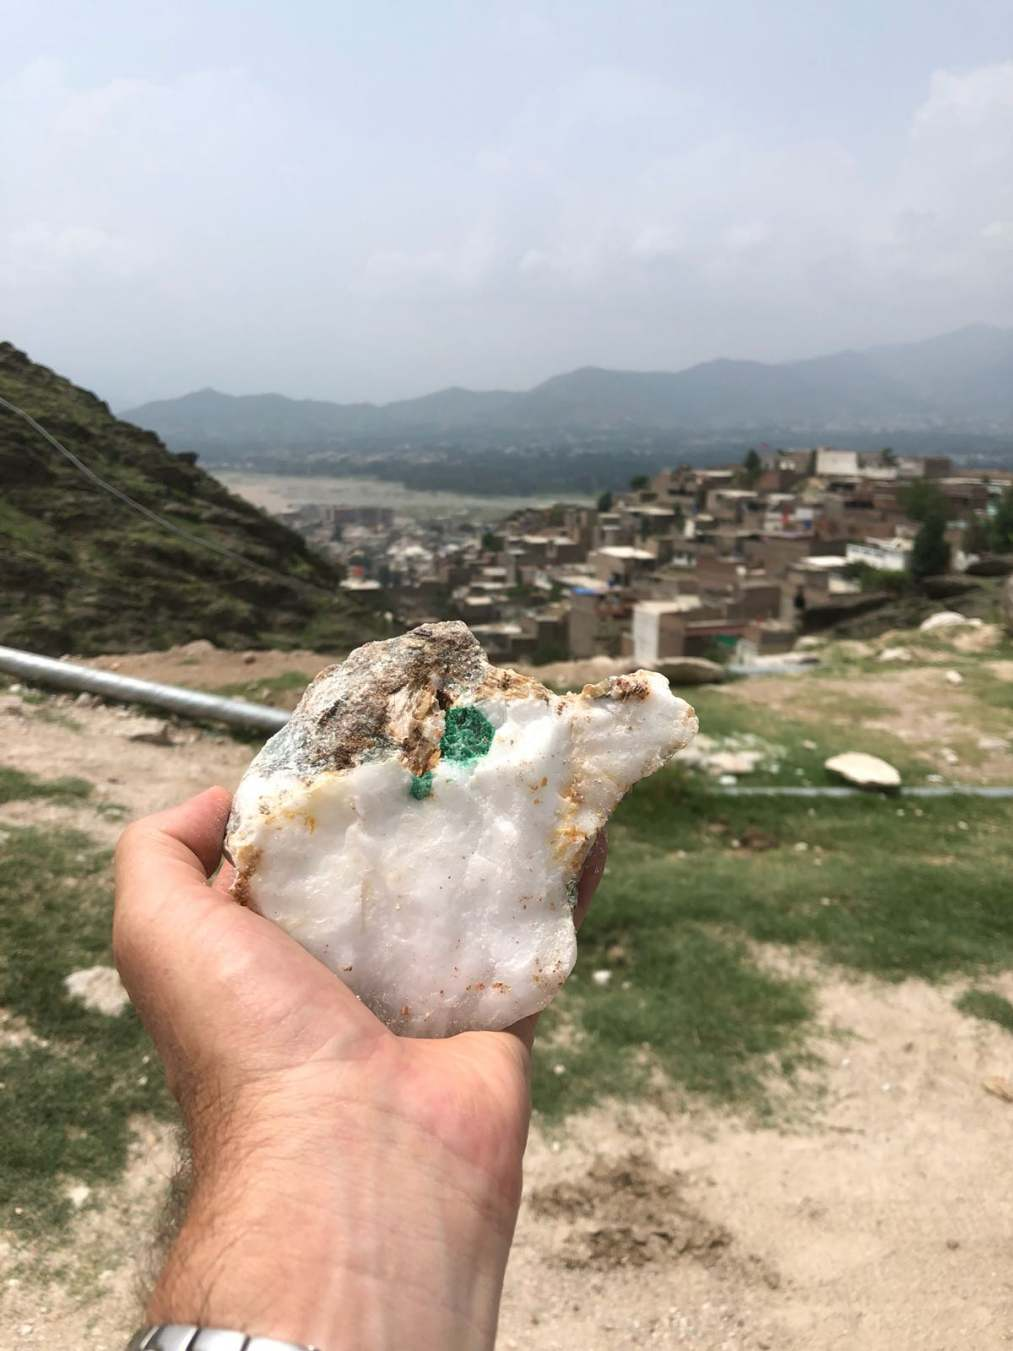 Emerald in the rough, Swat Valley